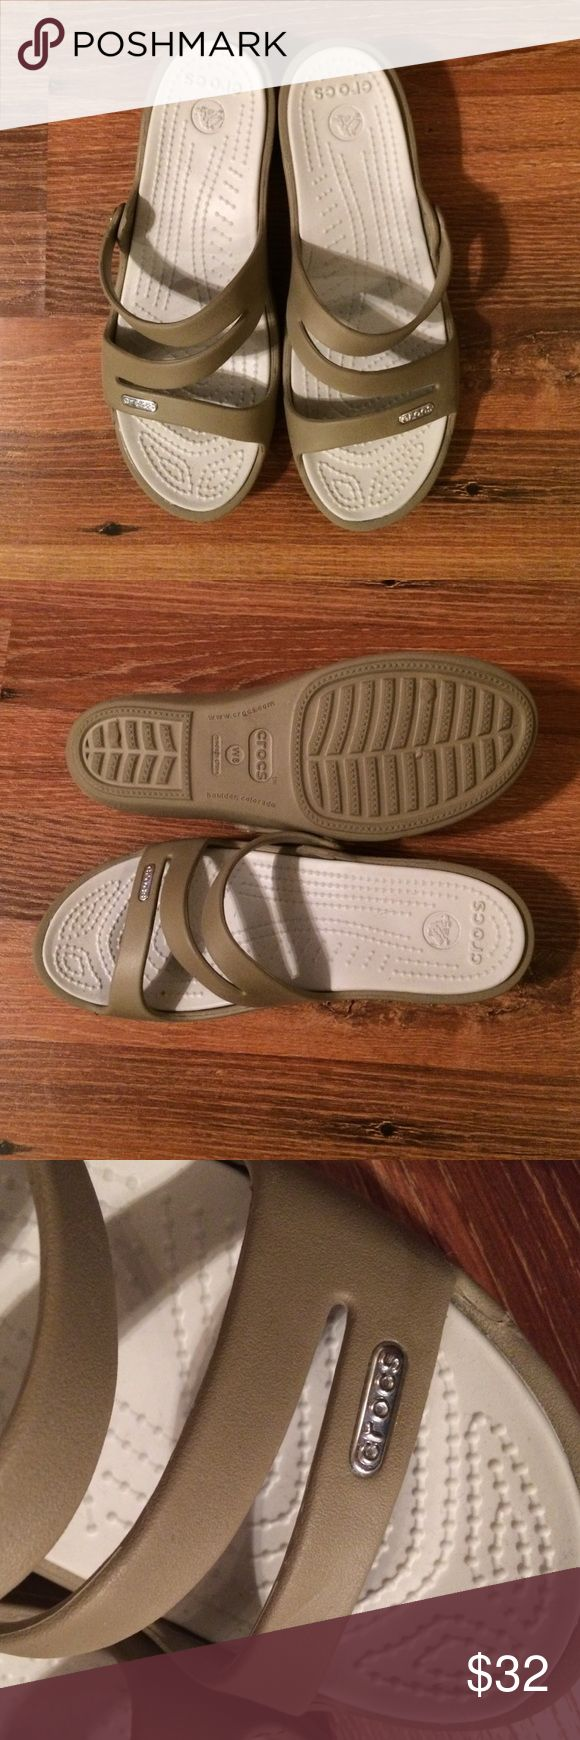 Crocs Sandals These are brand new never worn Crocs mini wedge sandals in a tan color Size 8 CROCS Shoes Sandals